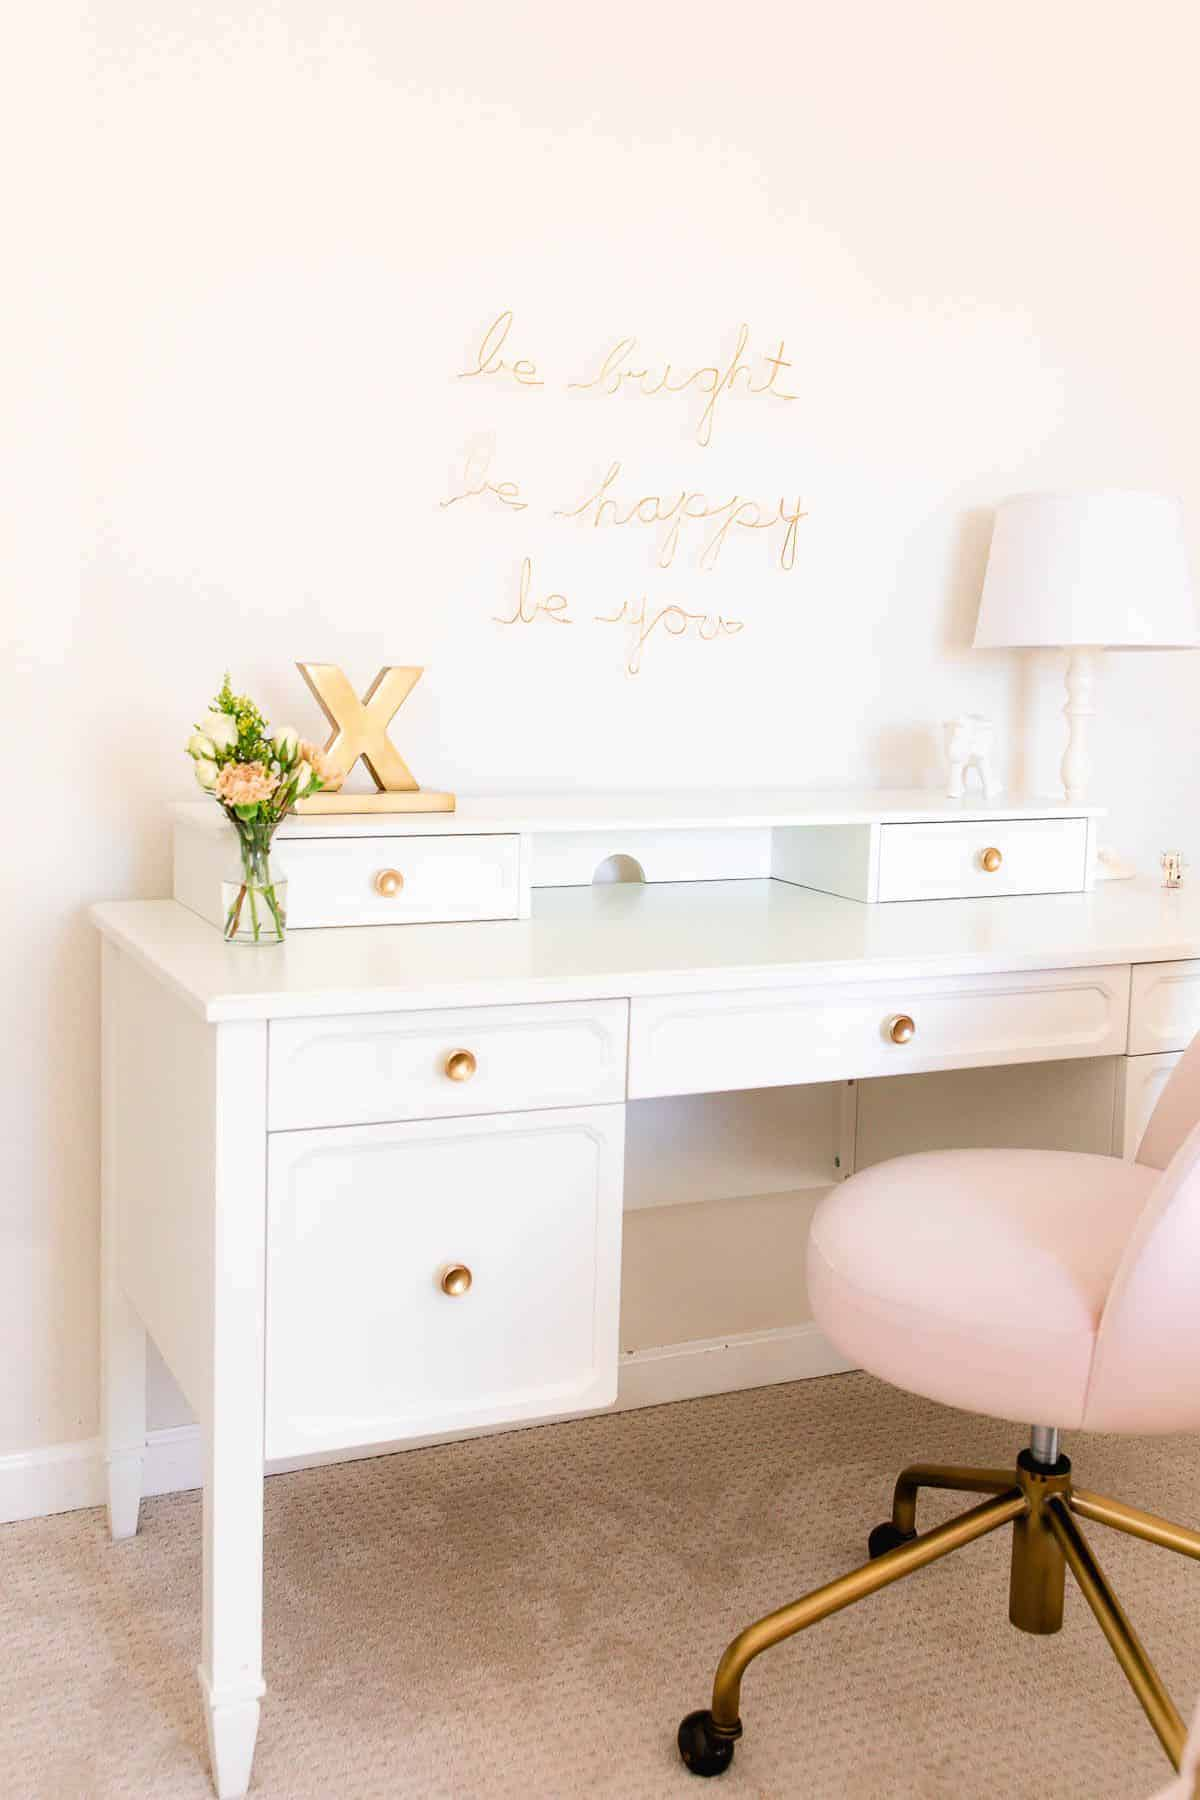 A pink and gold bedroom with a white desk and pink chair.